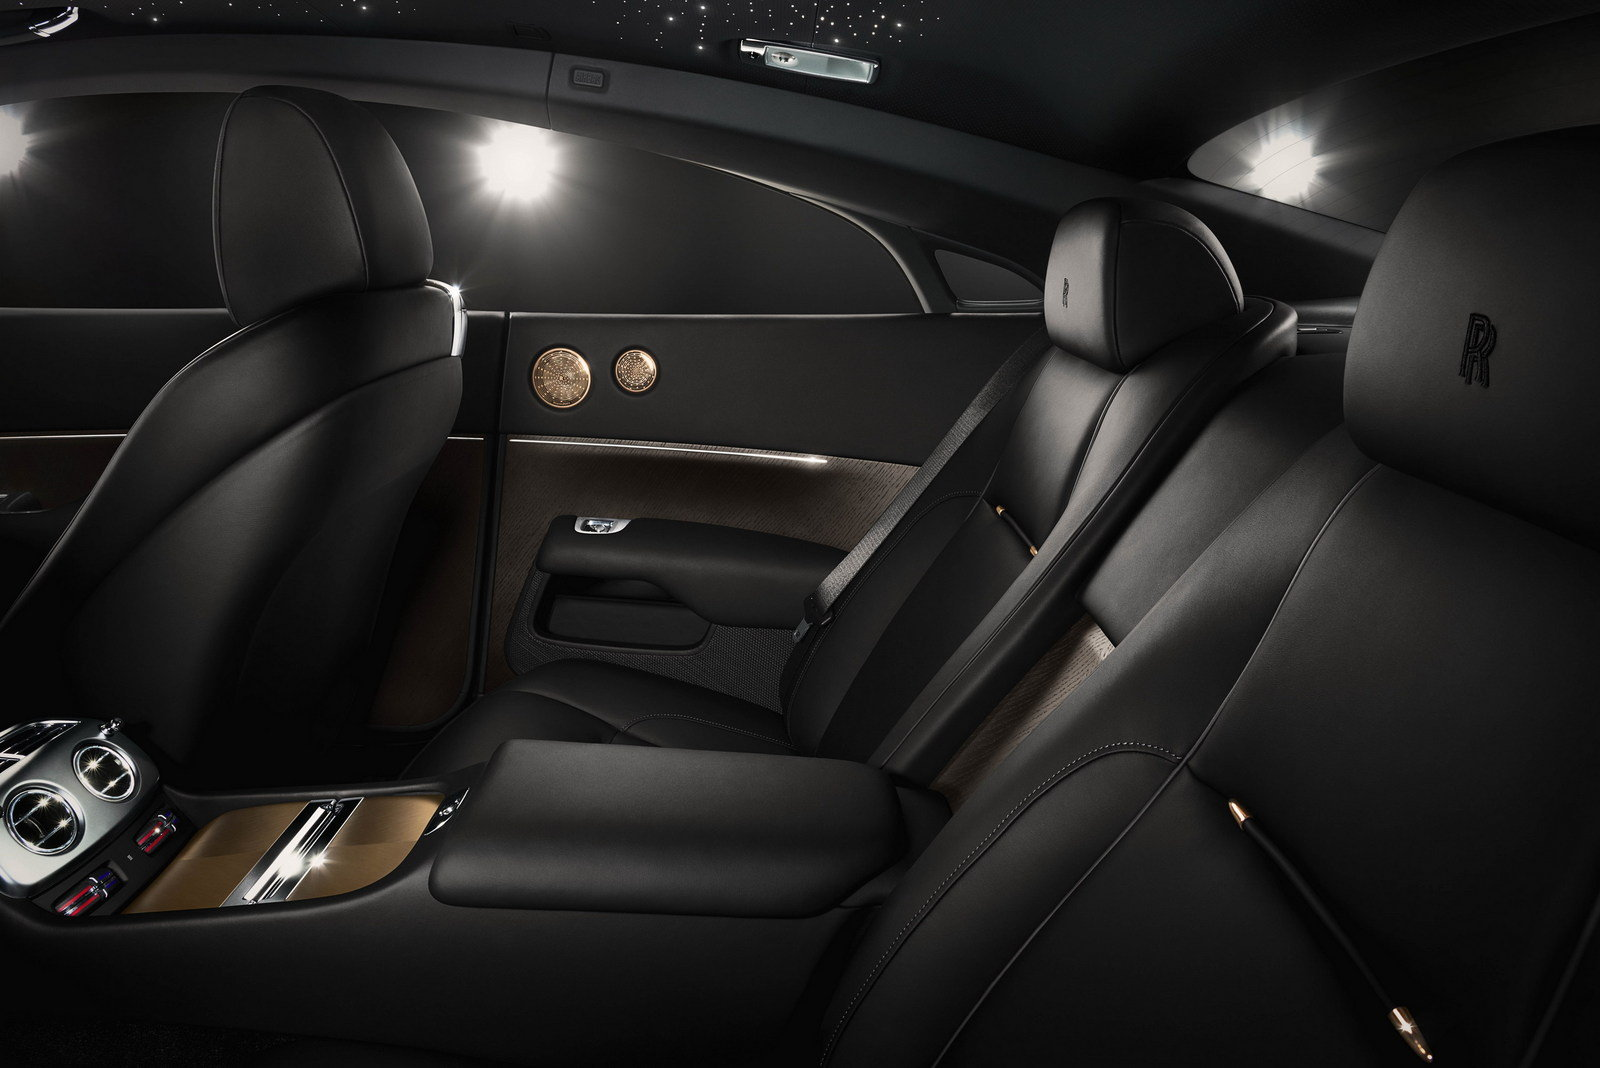 Rolls Royce Wraith Video Review Rolls-royce Wraith Inspired